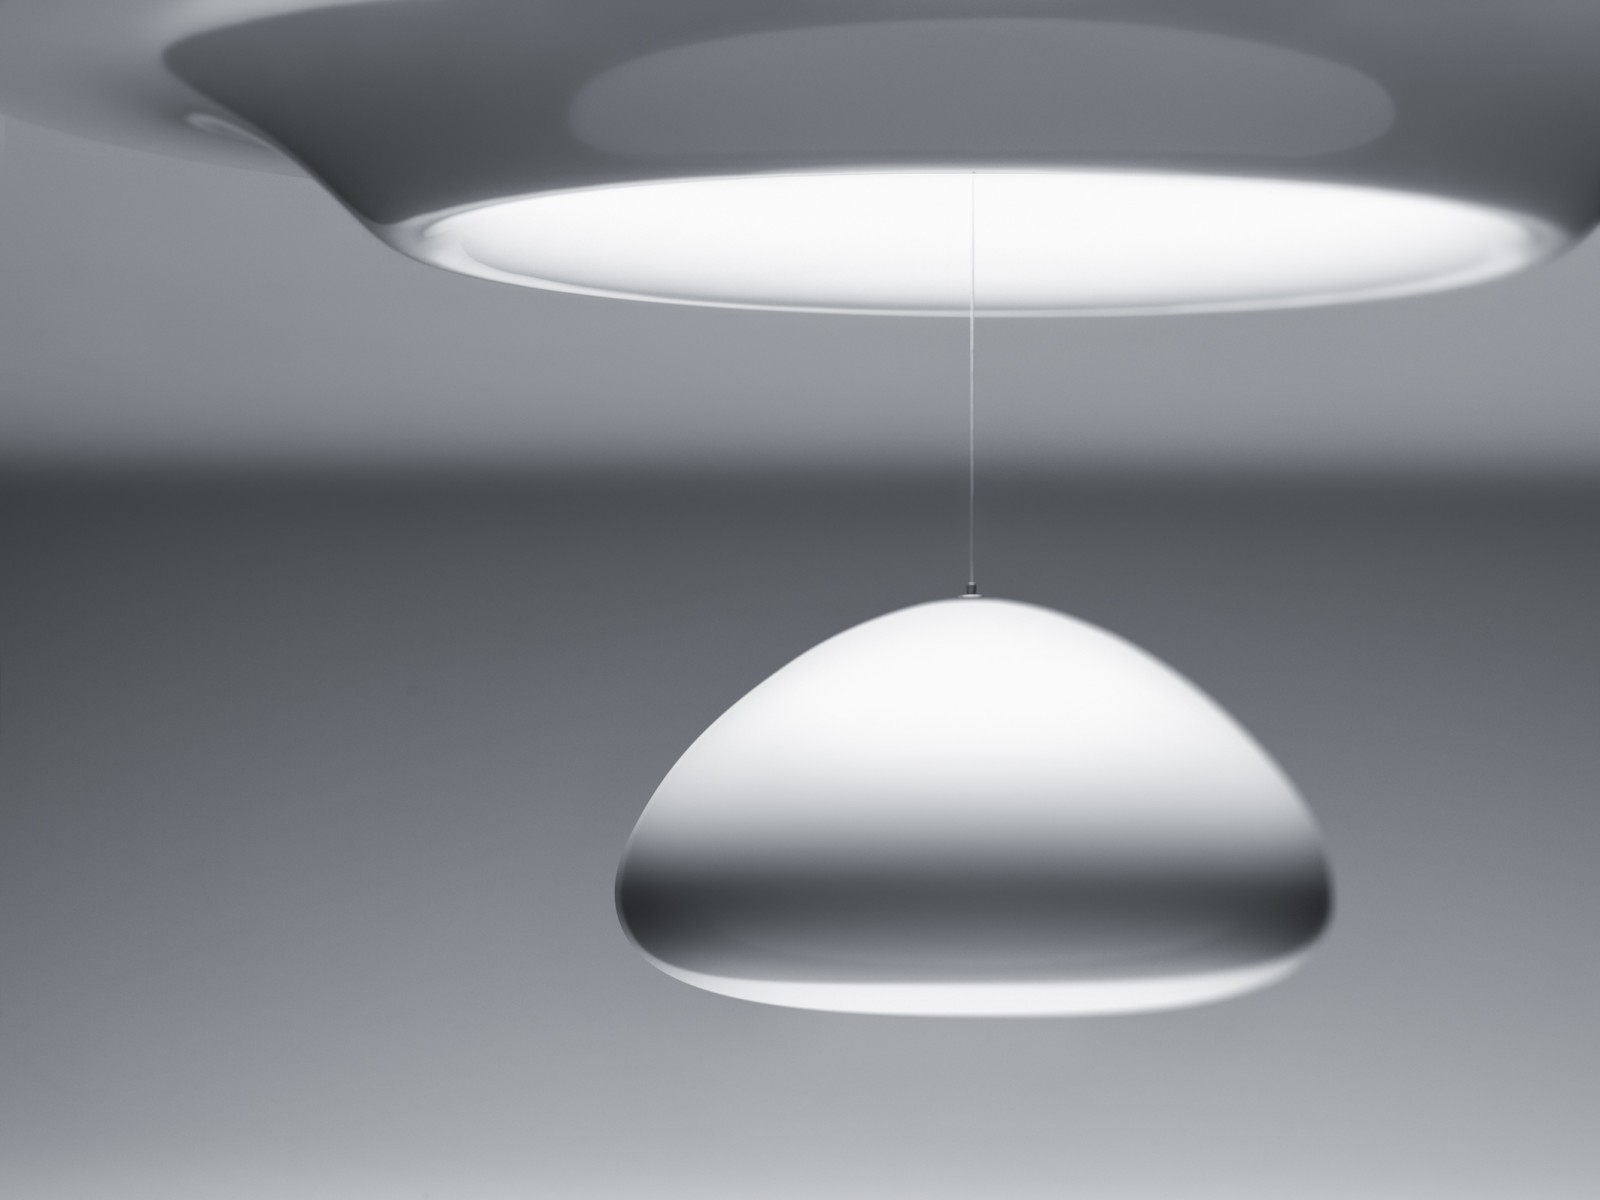 The velux group wins design award for sun tunnel by lovegrove - Velux salle de bain ...